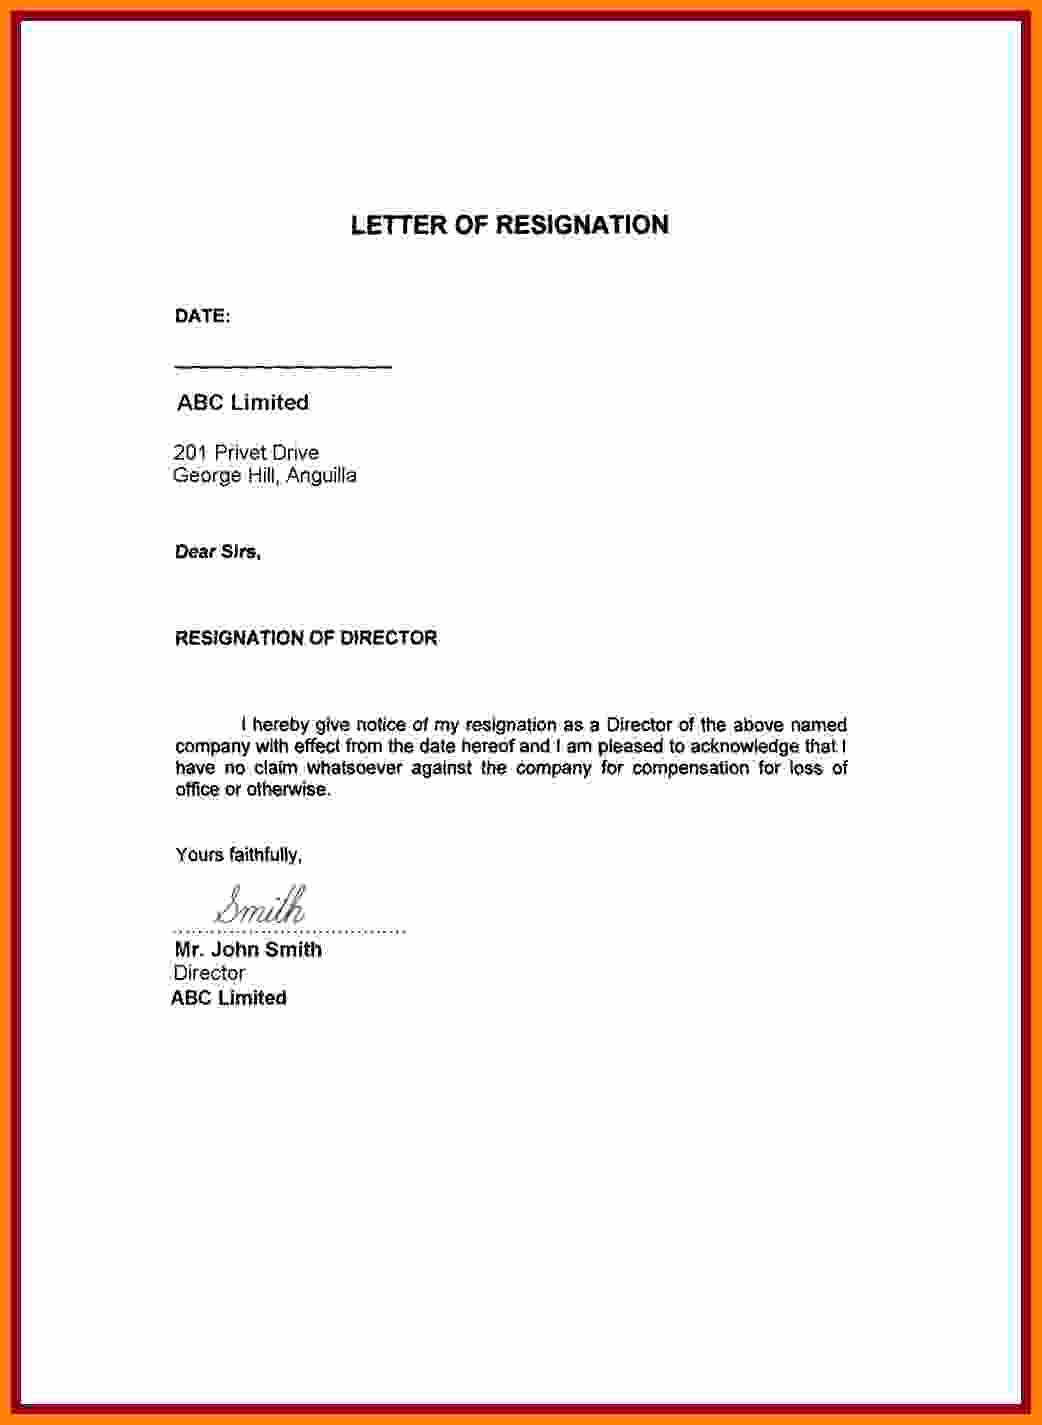 Resignation Letter Effective Immediately Unique 6 Sample Resignation Letter with Reason Effective